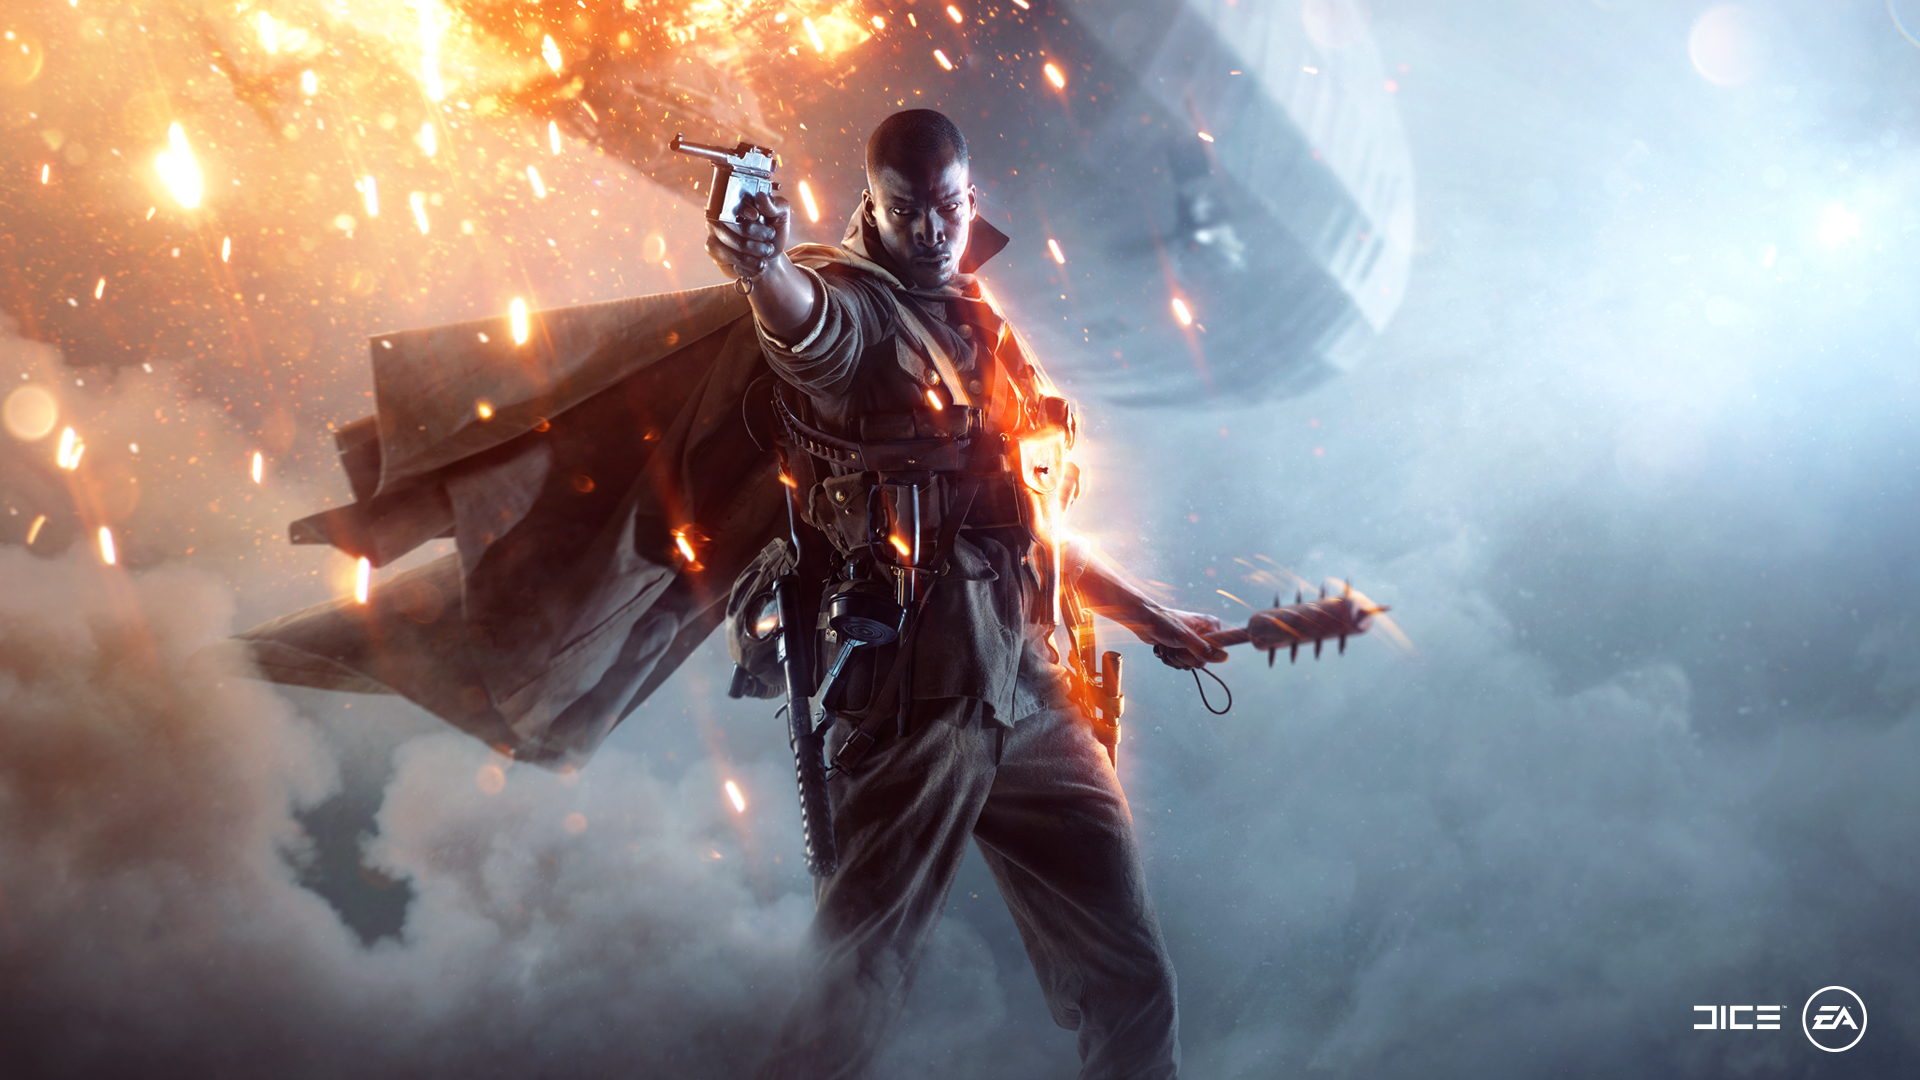 Excellent Battlefield 1 Wallpapers for PC, Mobile, and Tablets RF13